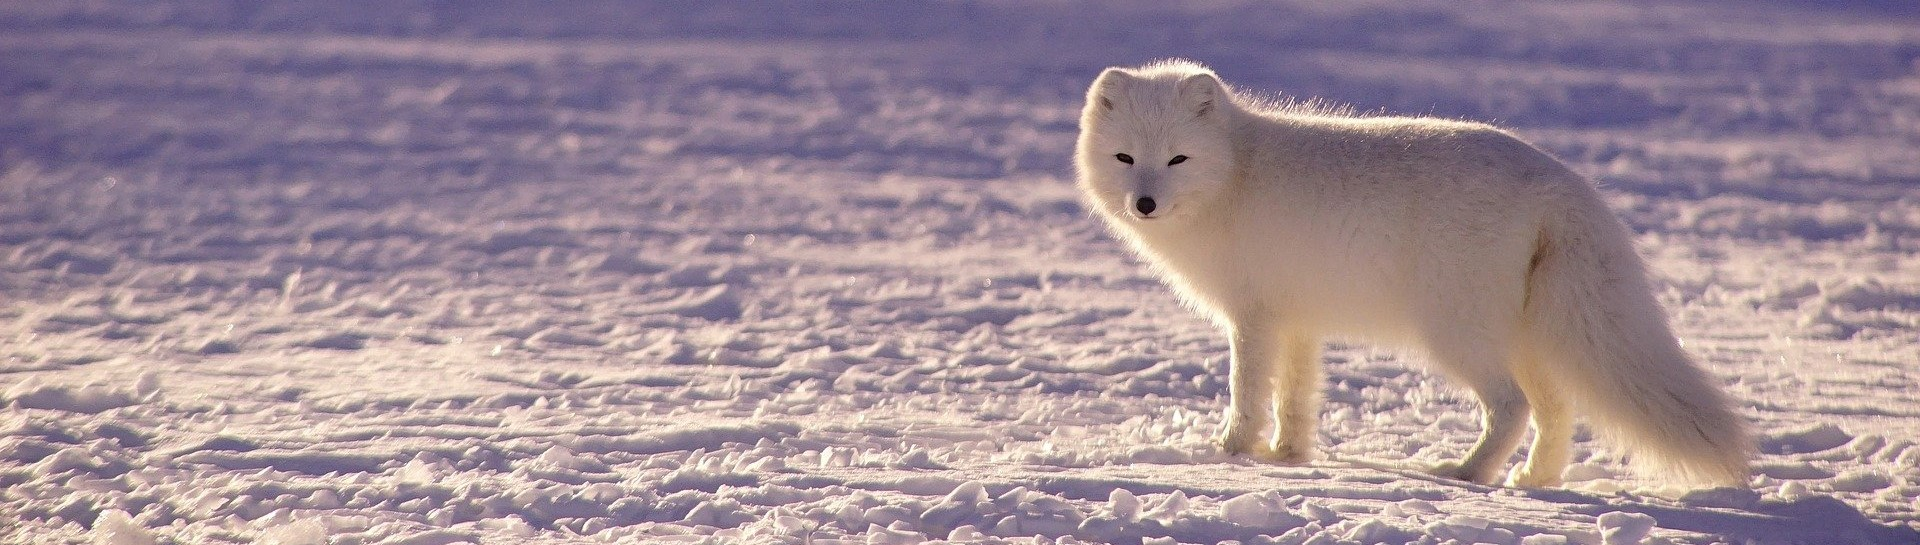 Image of arctic fox traveling in snow tundra